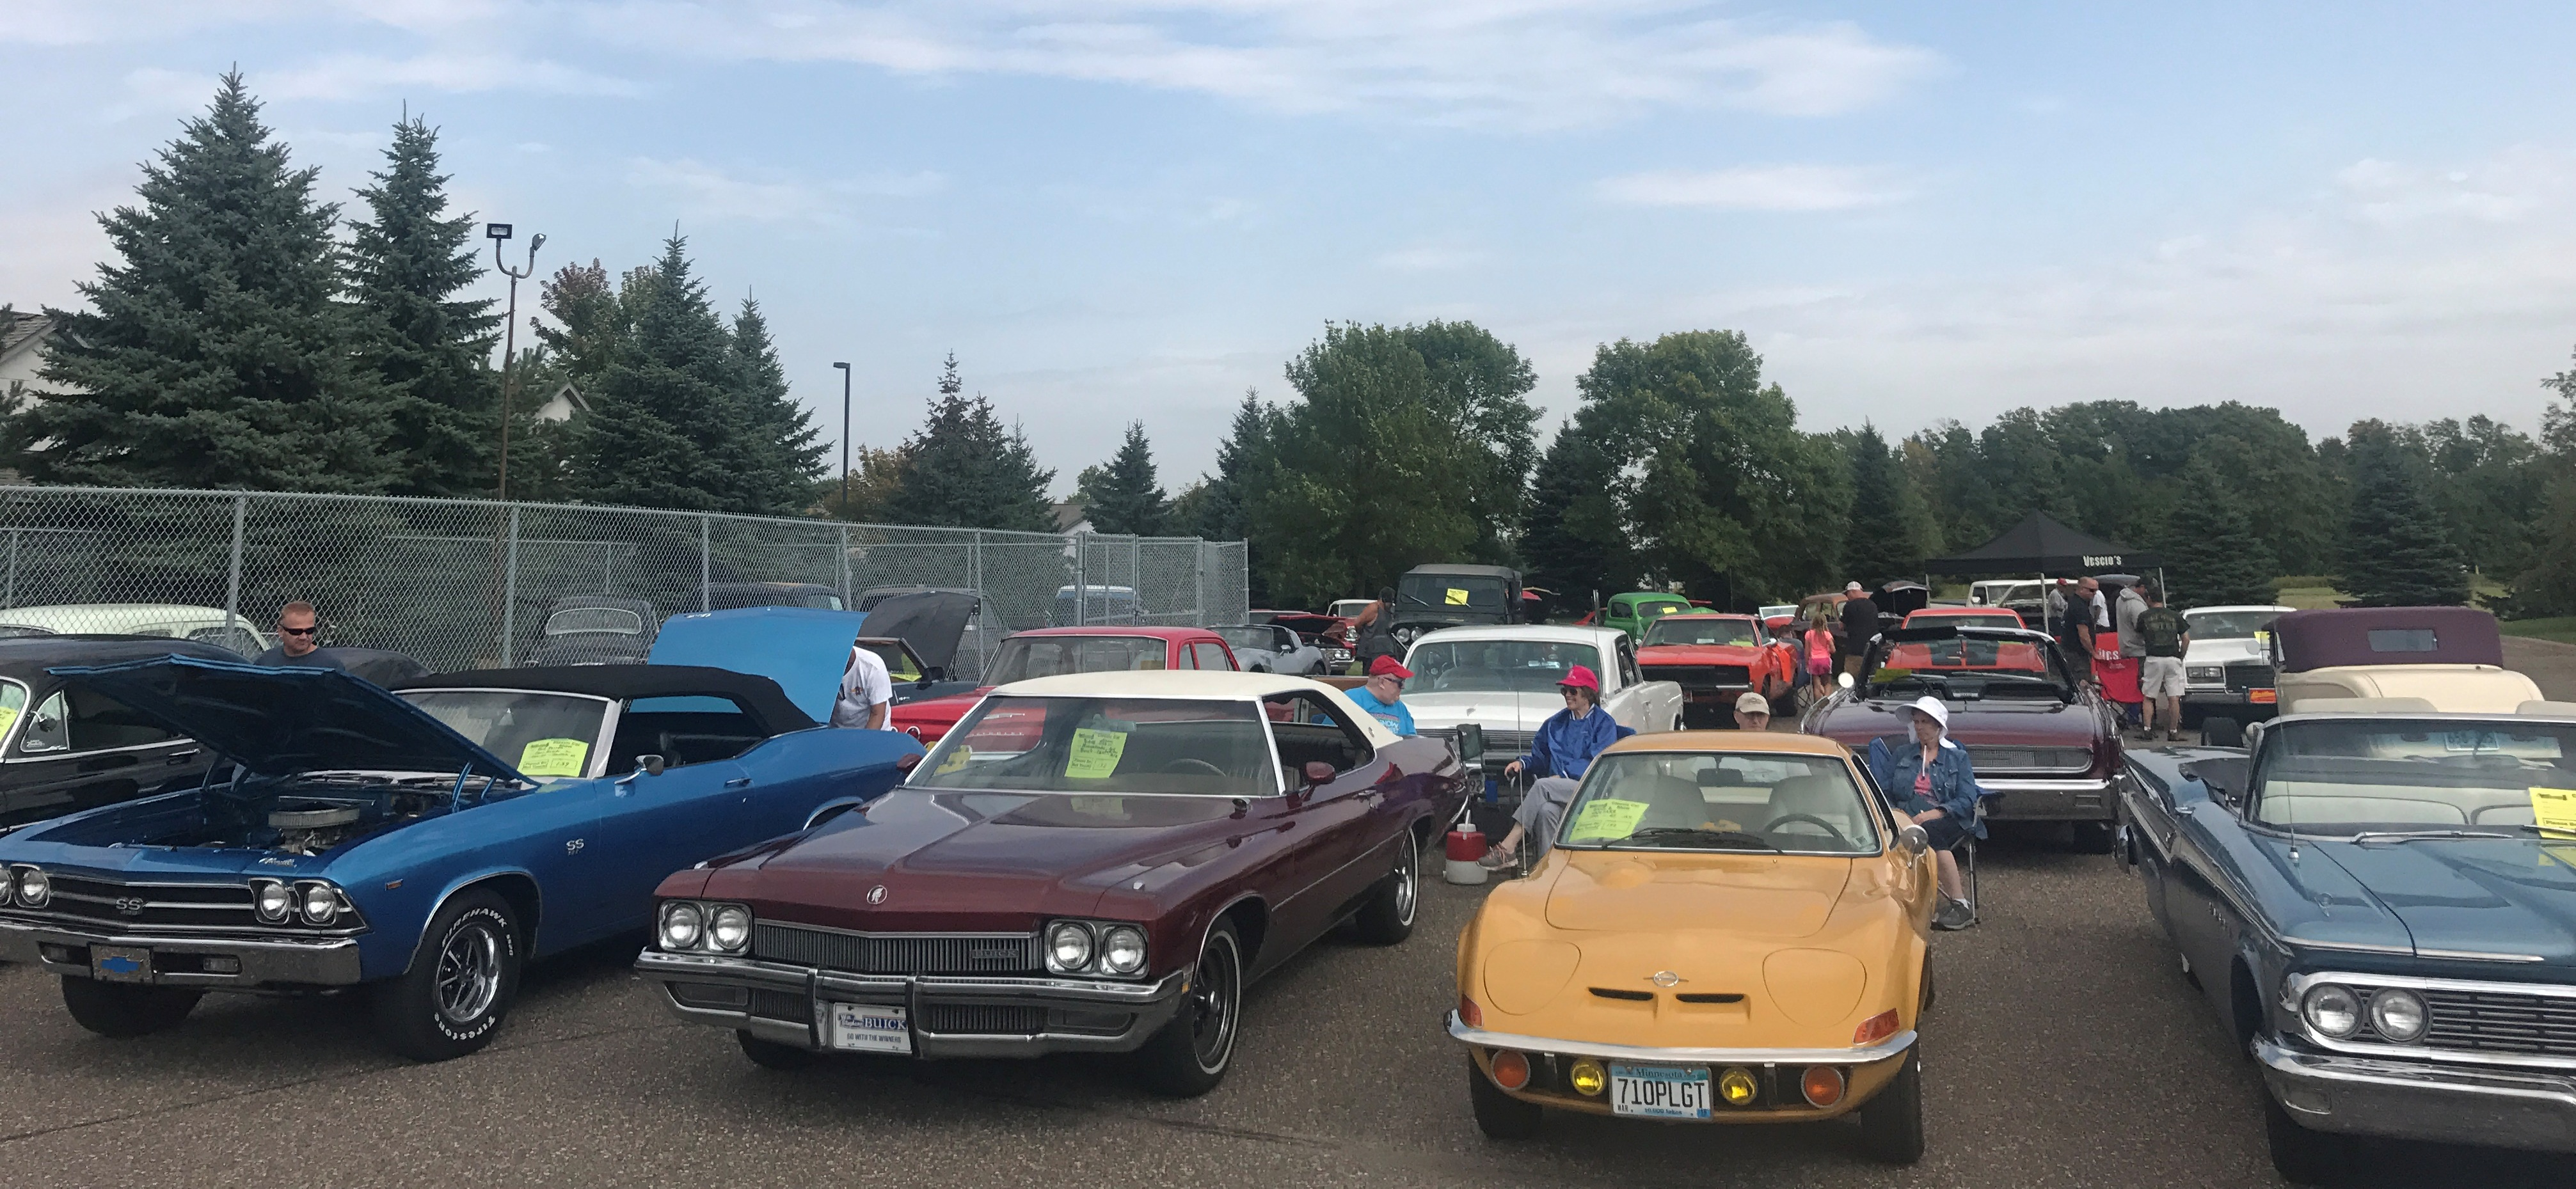 Thank You For Attending Our Car Show | Classic Car Dealer Rogers ...